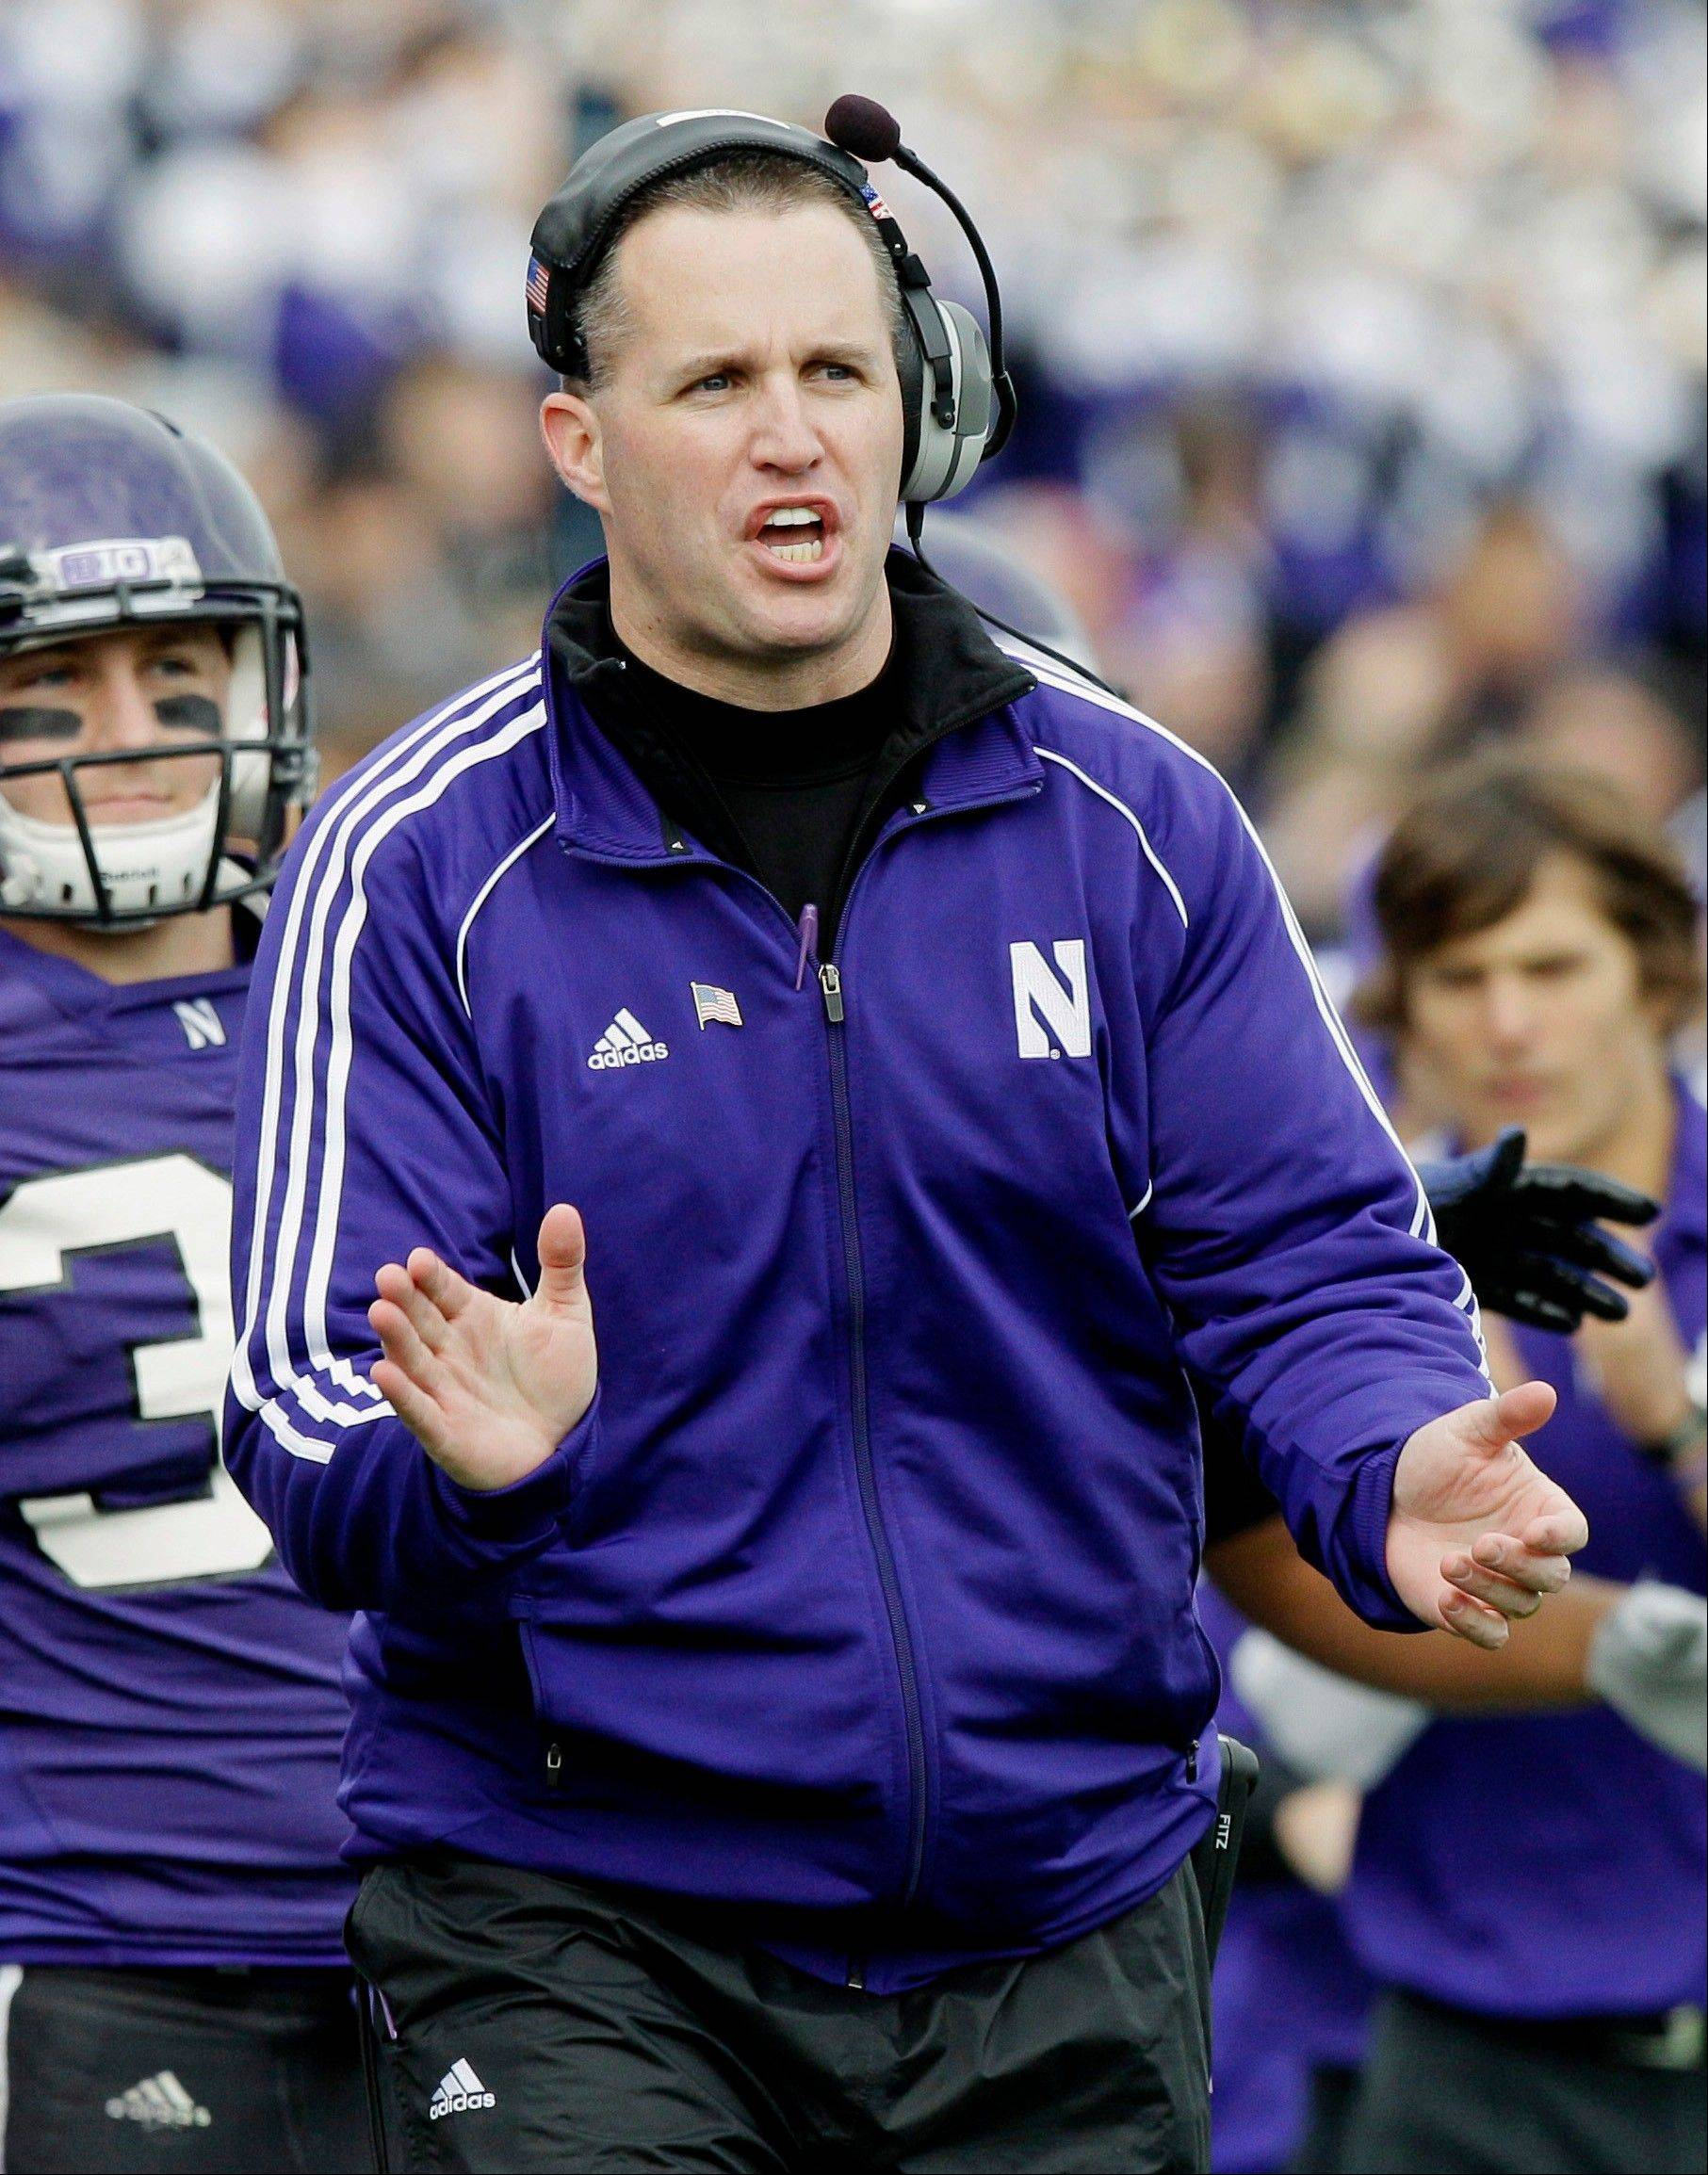 Northwestern head coach Pat Fitzgerald shouts instructions to his players during a game against Minnesota in Evanston. Northwestern's season opener is Sept. 1, 2012 against Syracuse.